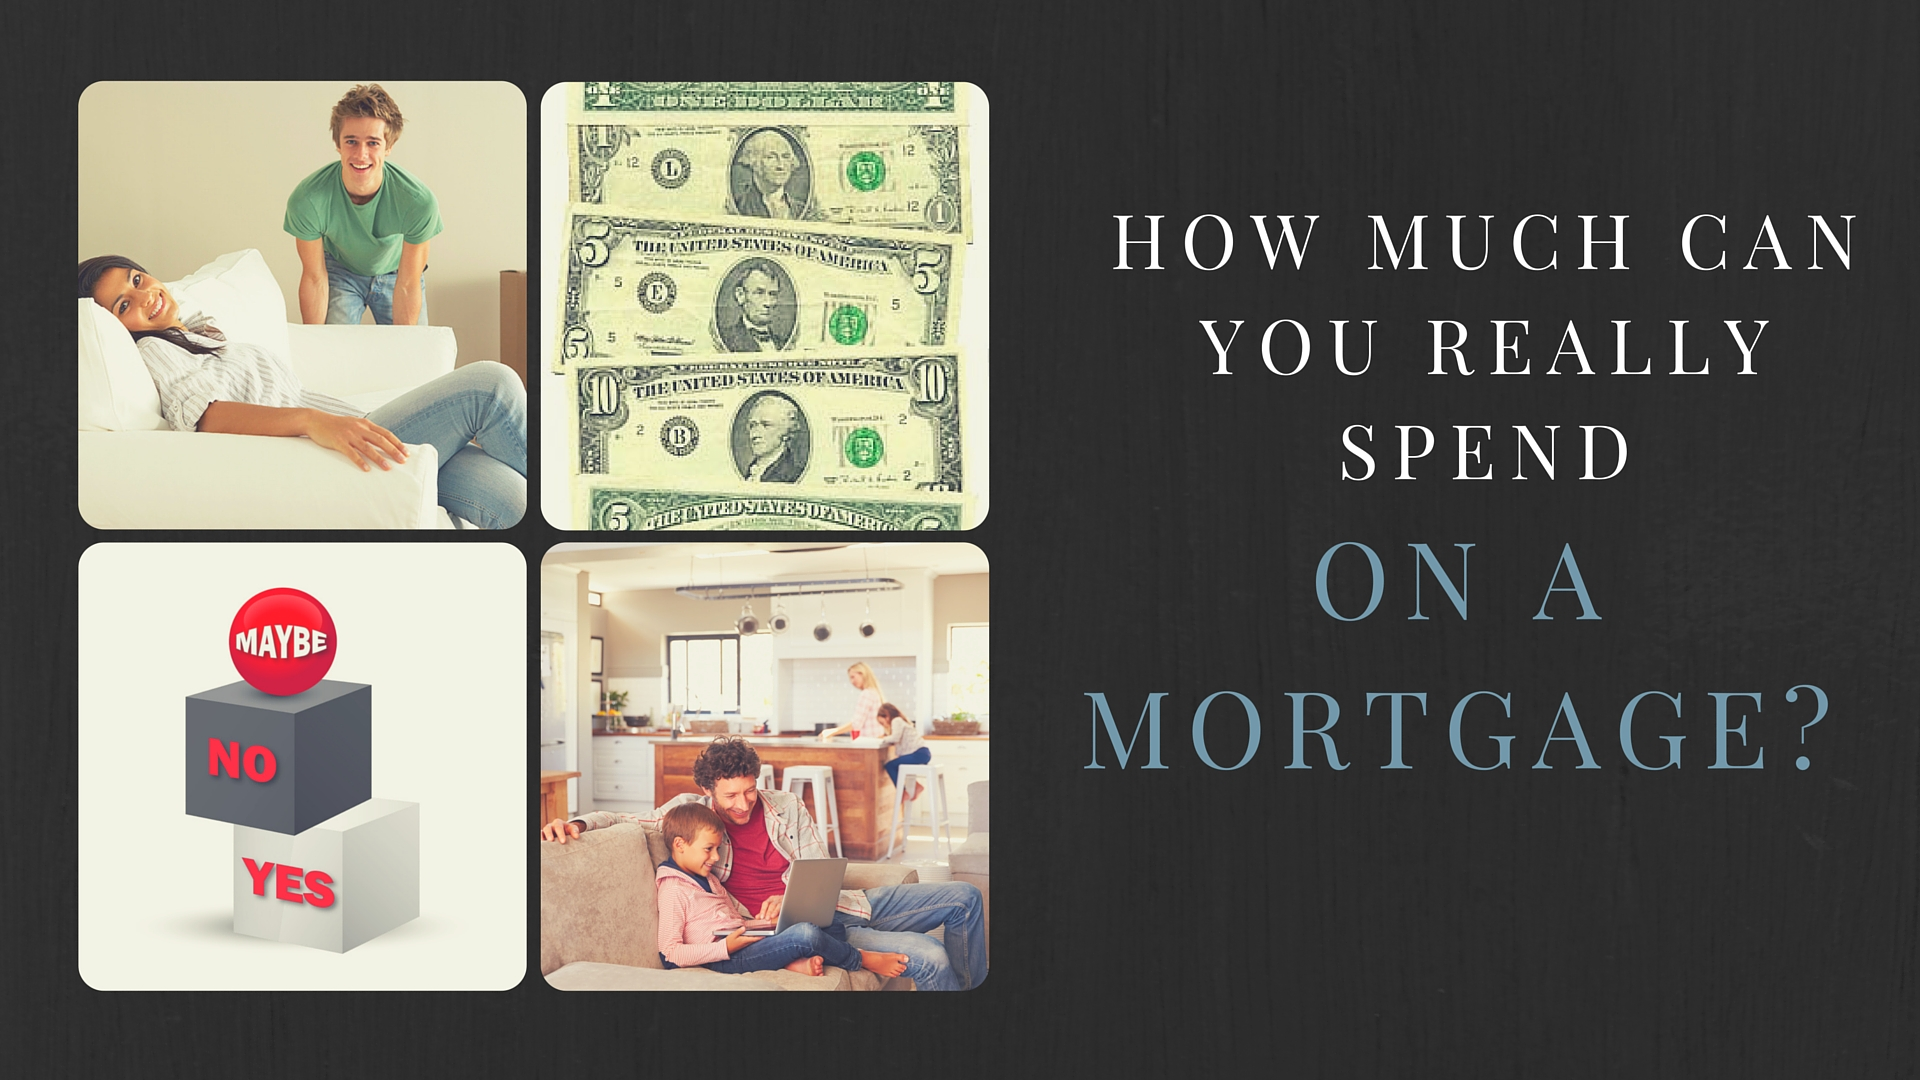 How much should we spend on a mortgage